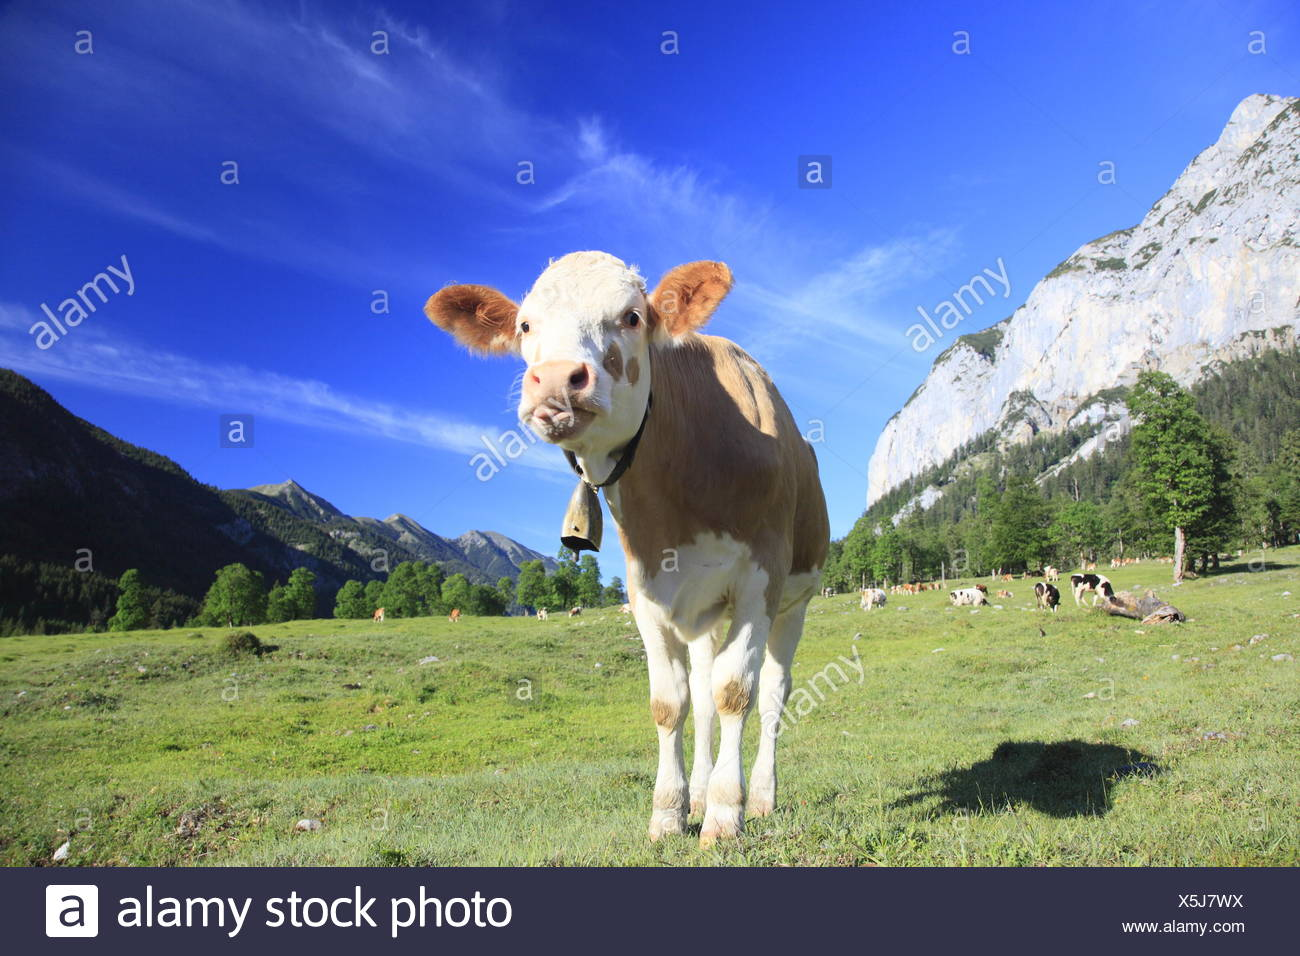 funny cow - Stock Image